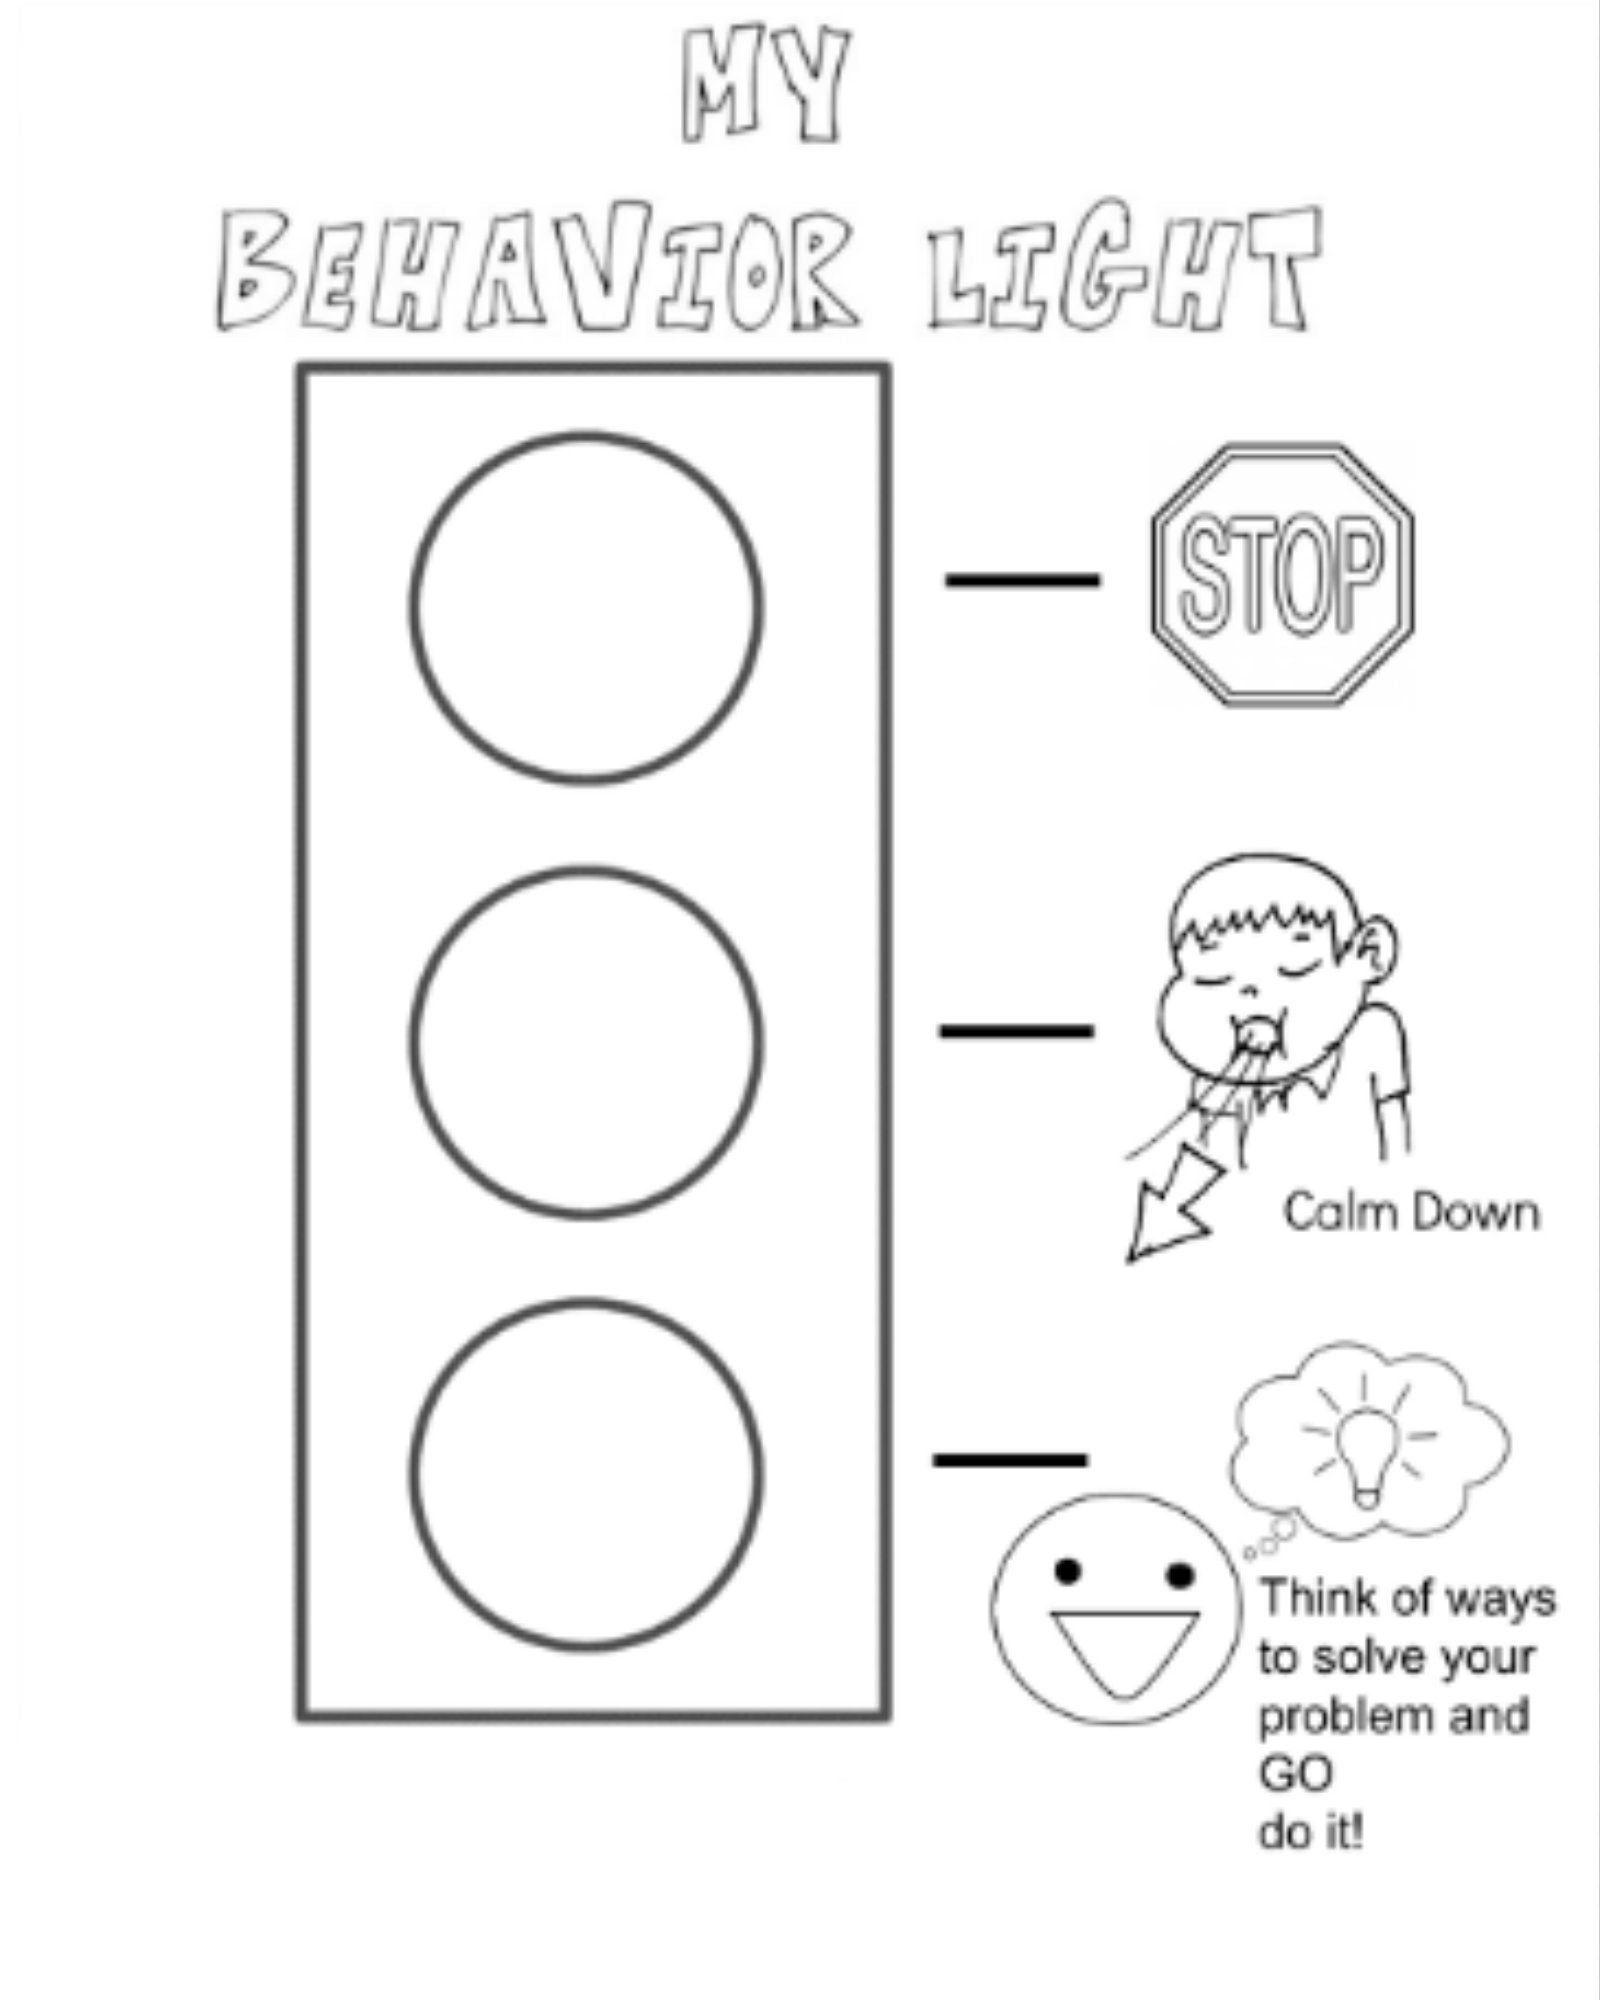 Pin By Chelsea Pecina On Parenting Anger Management Worksheets Anger Management Activities For Kids Stop Light